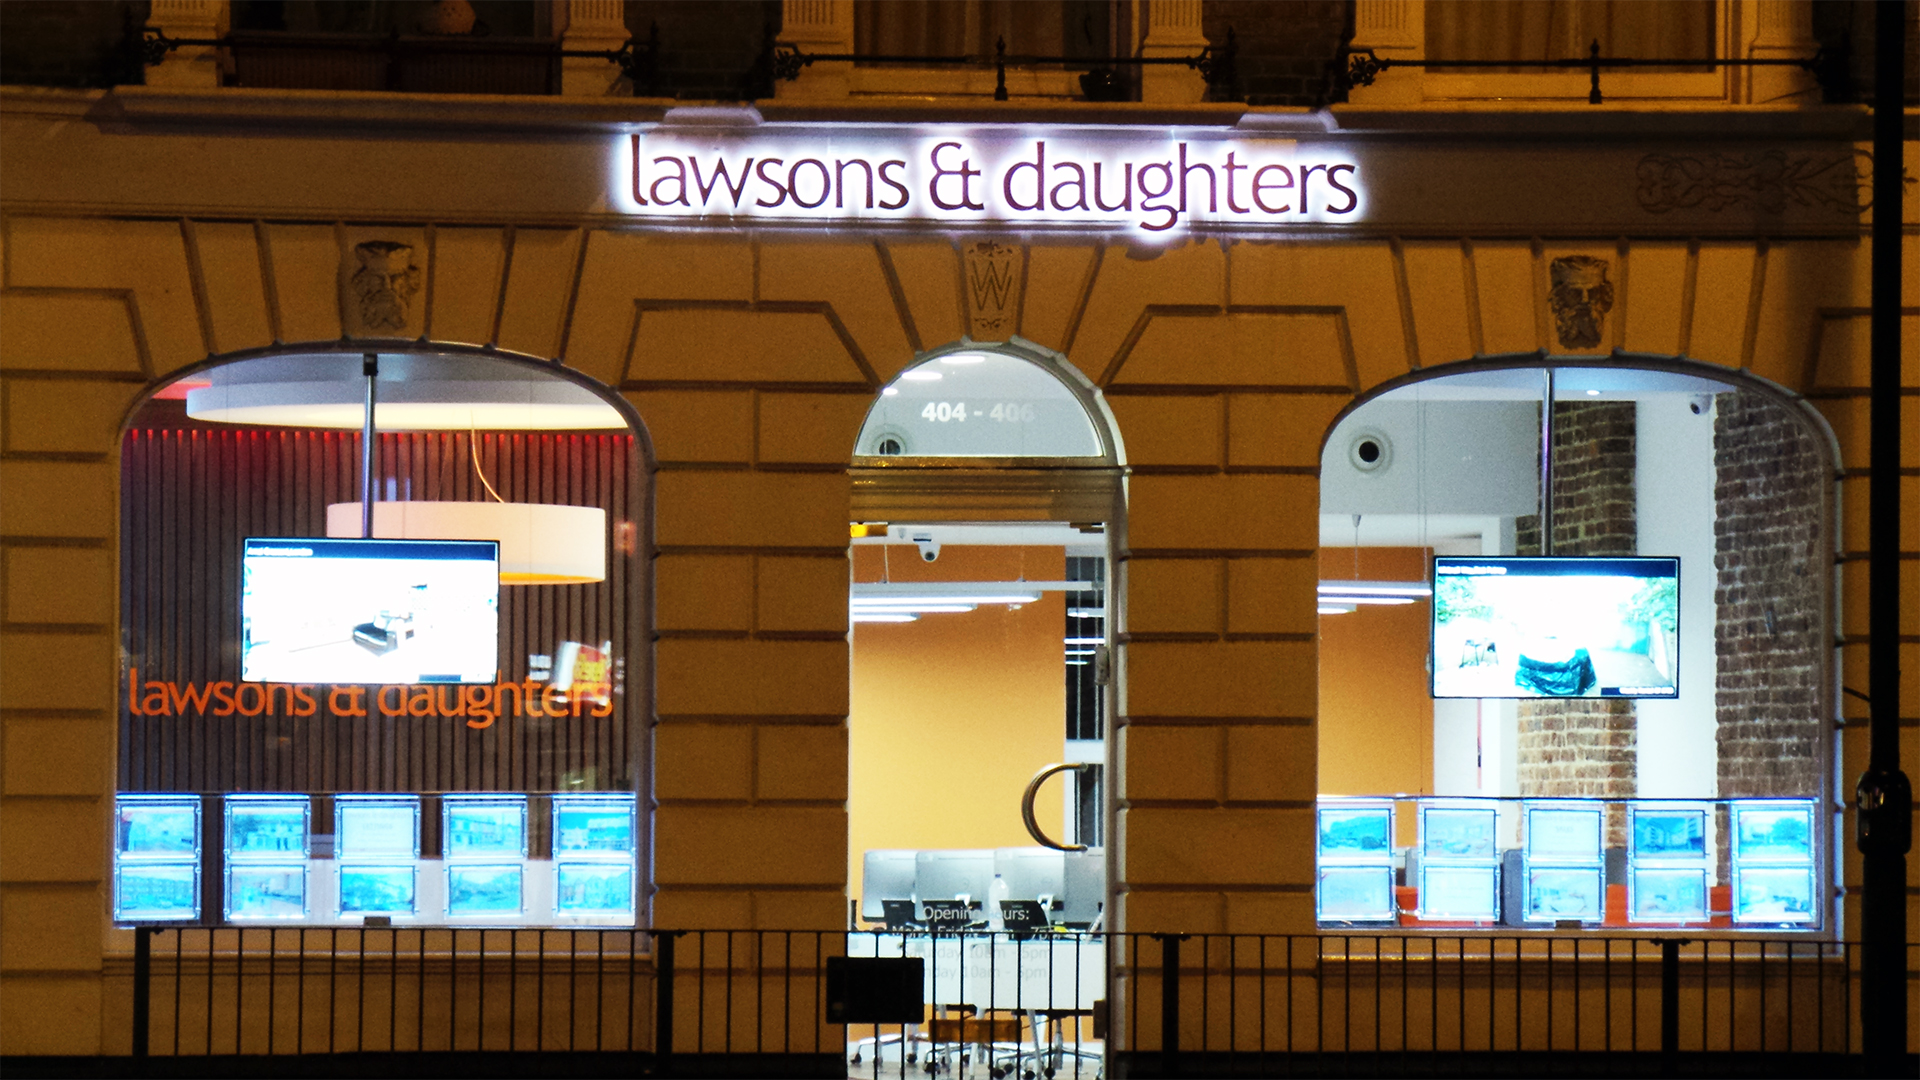 illuminated-signs-london-lawsons-1